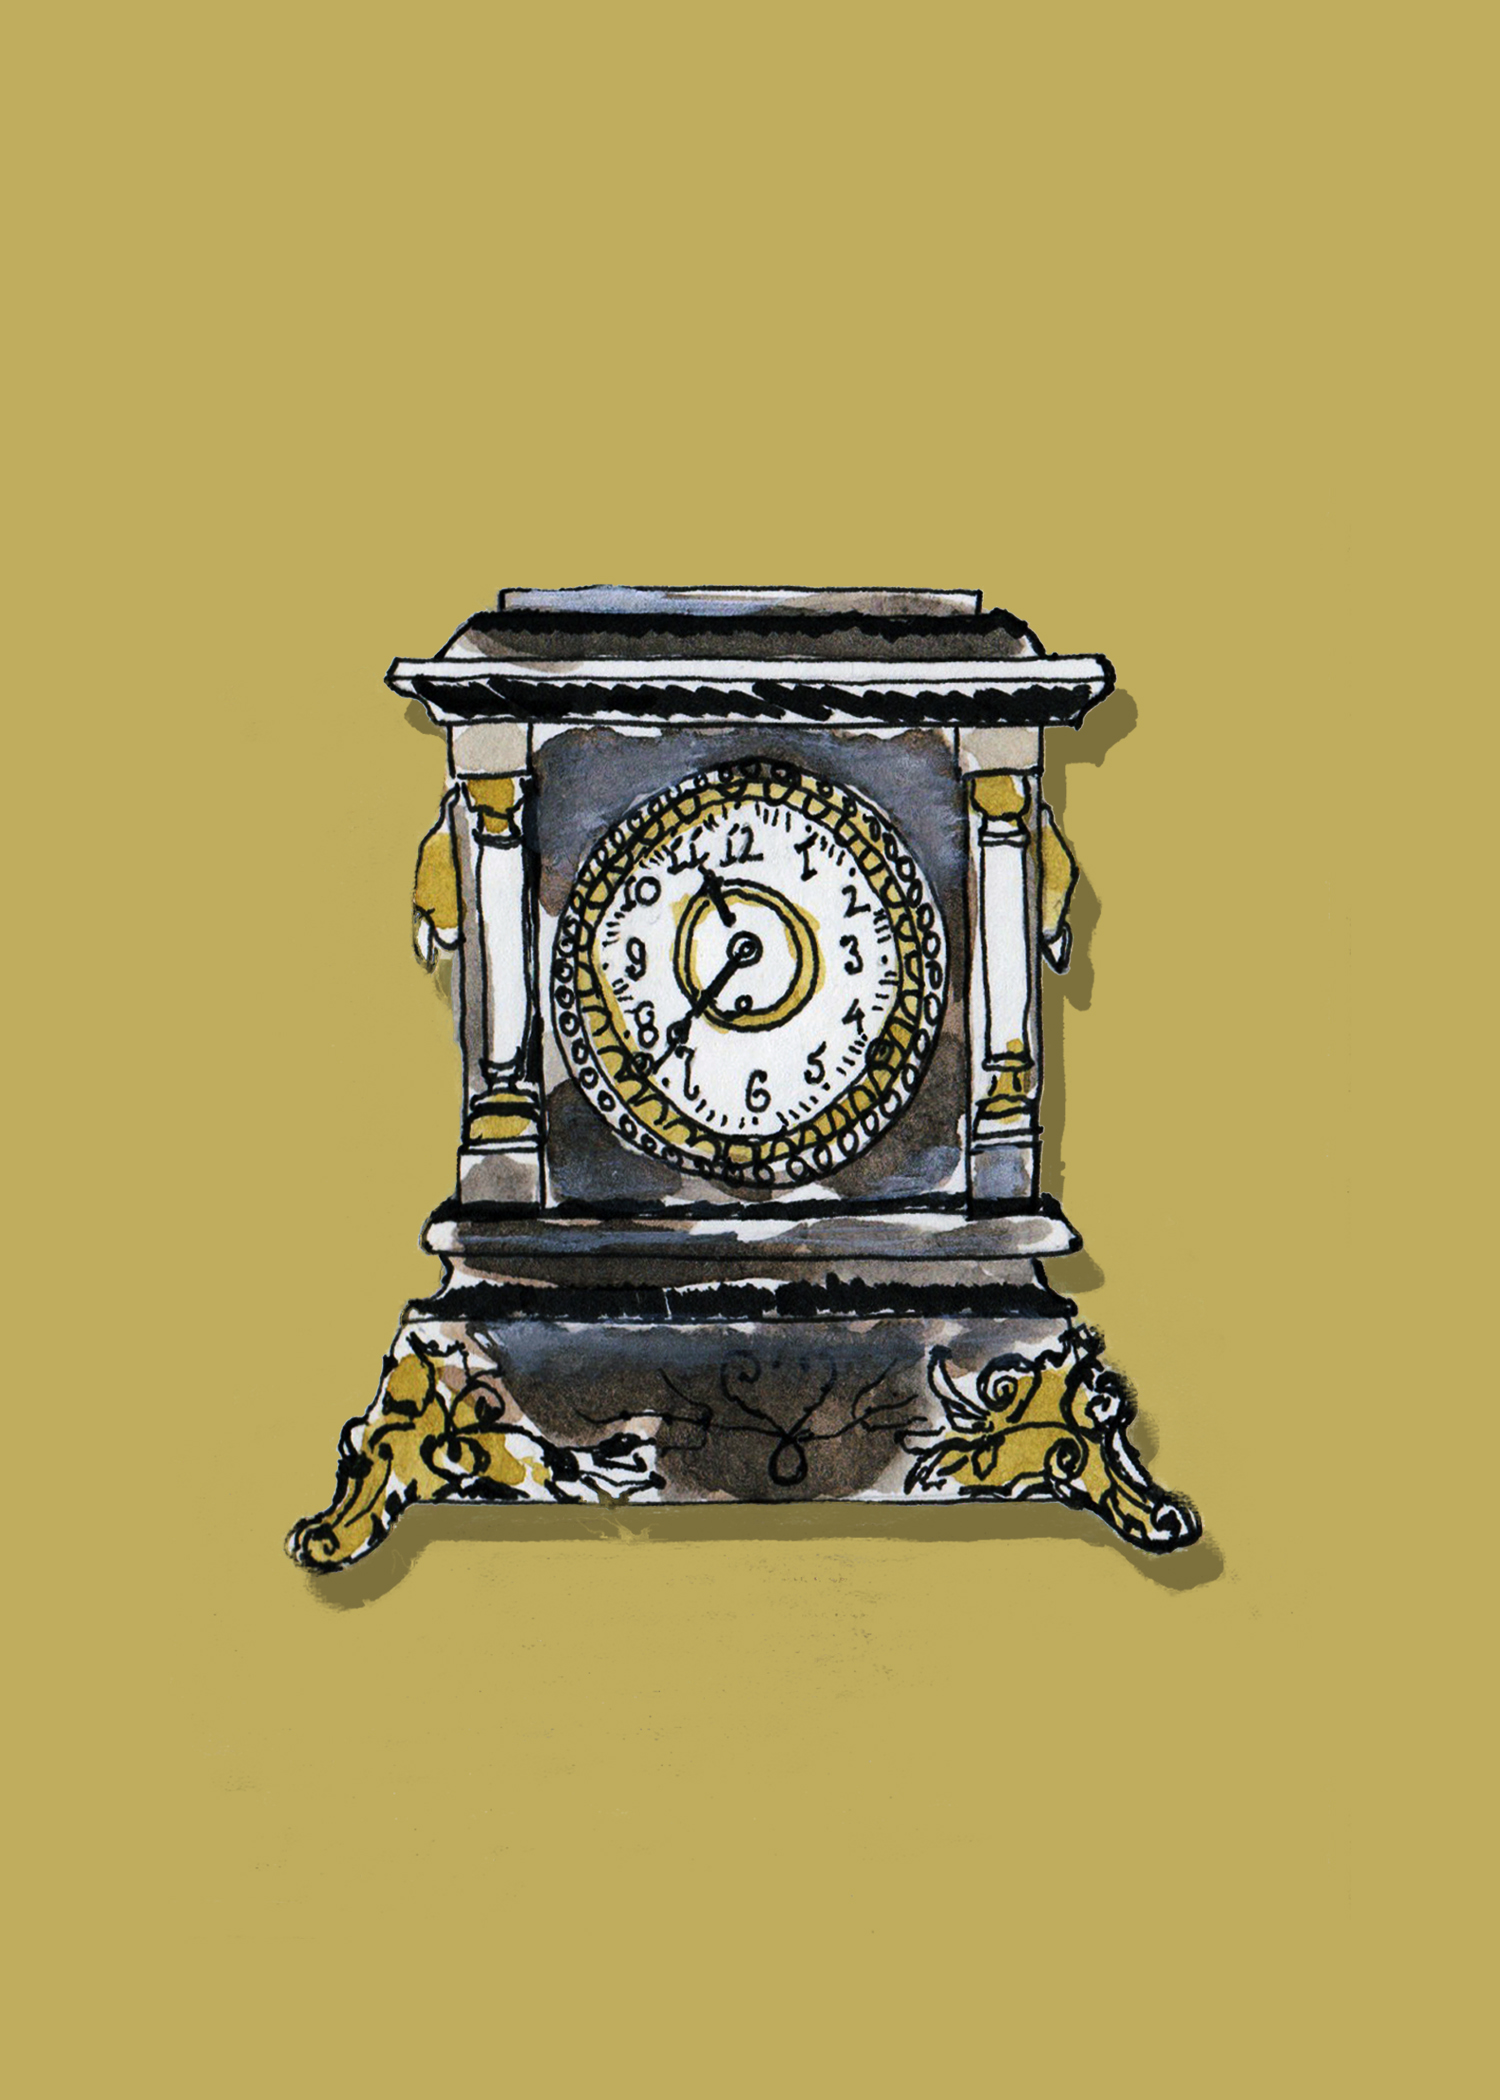 Portrait of a Black Clock